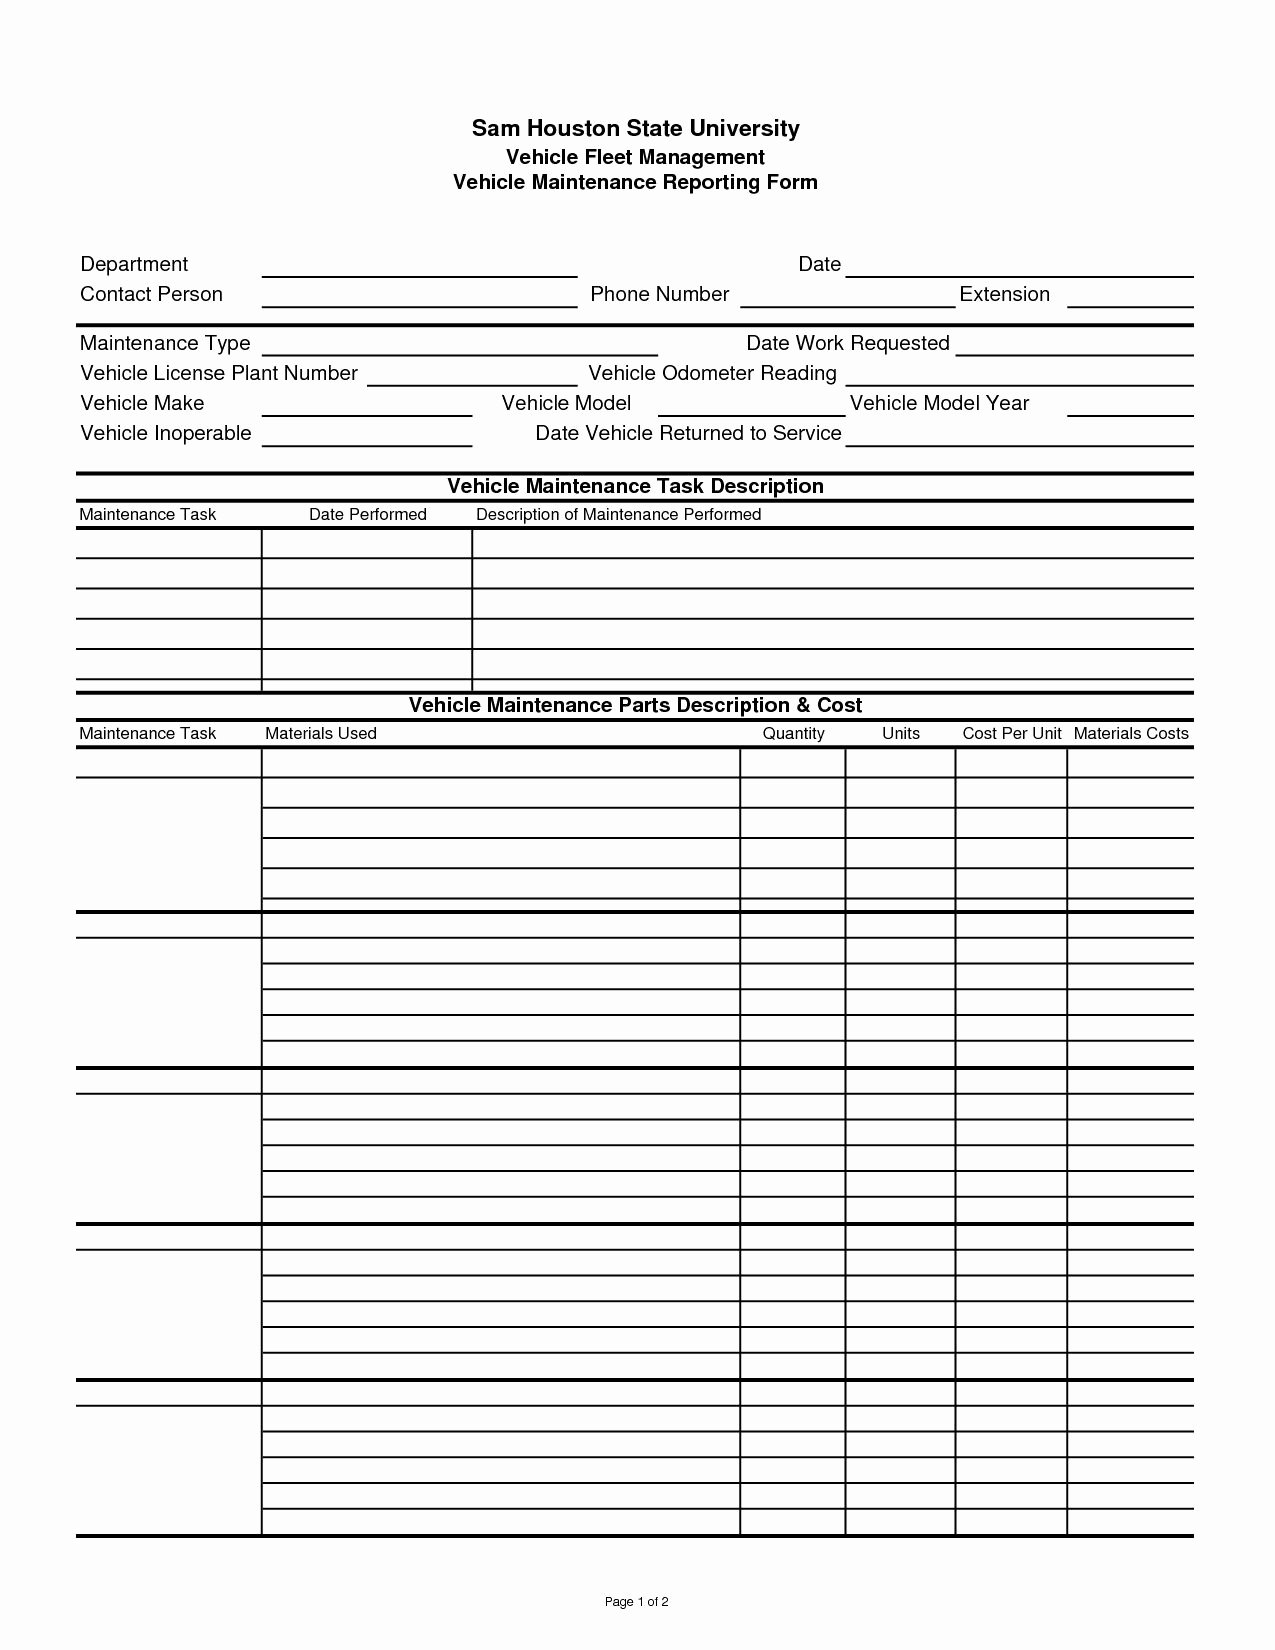 Preventive Maintenance Excel Template Fresh Preventive Maintenance Spreadsheet Spreadsheet softwar Preventive Maintenance Tracking